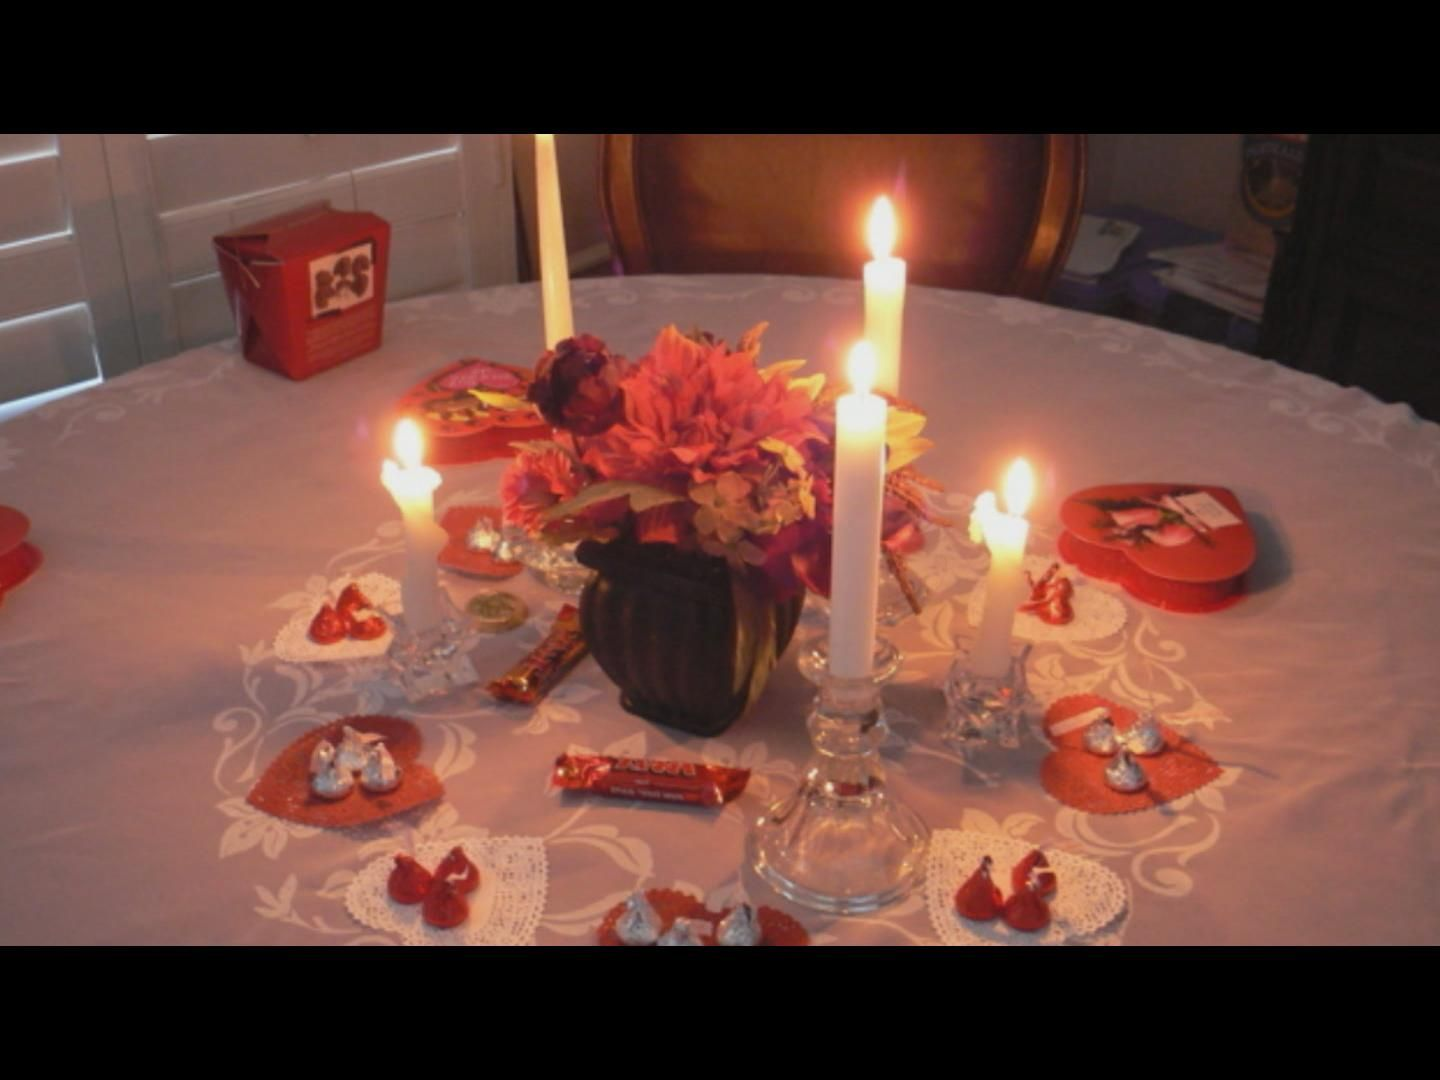 Romantic valentine dinner ideas at home learn to have more great date nights at http peaklifelink com anniversary ideas pinterest romantic